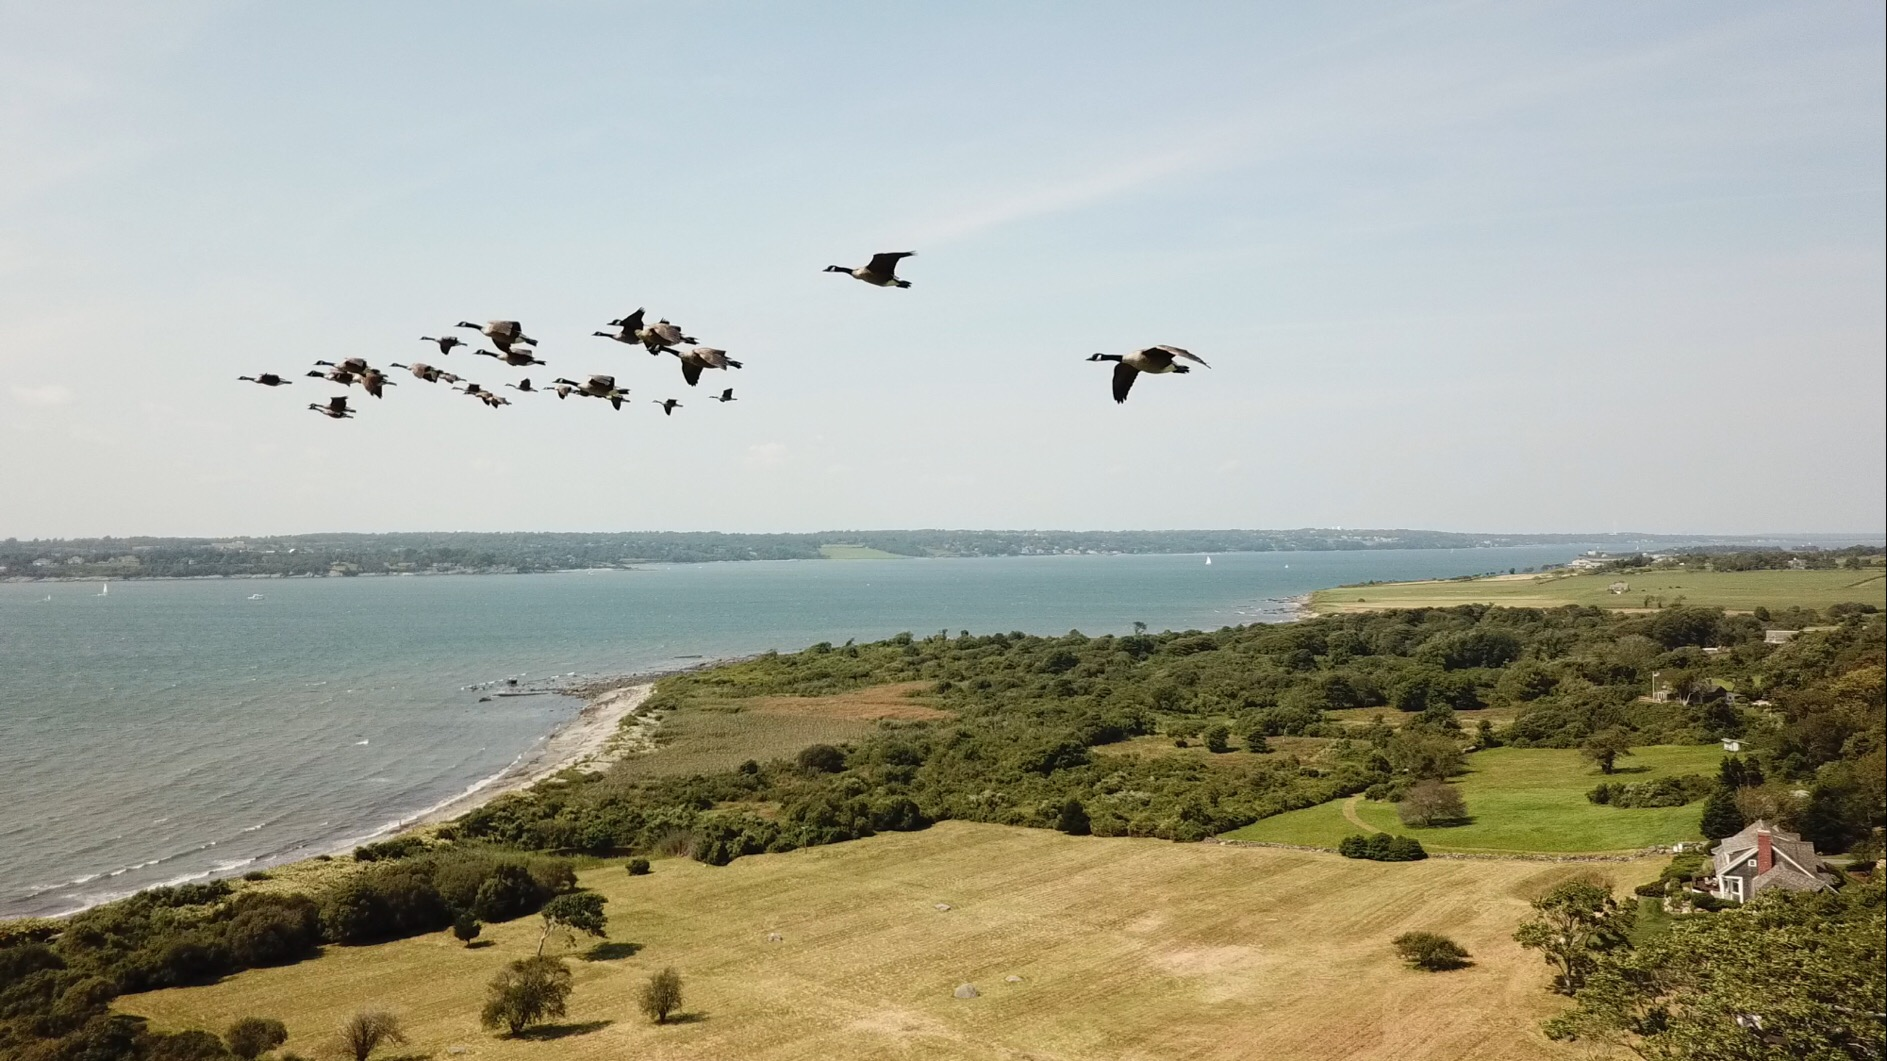 Canadian geese over the Sakonnet River